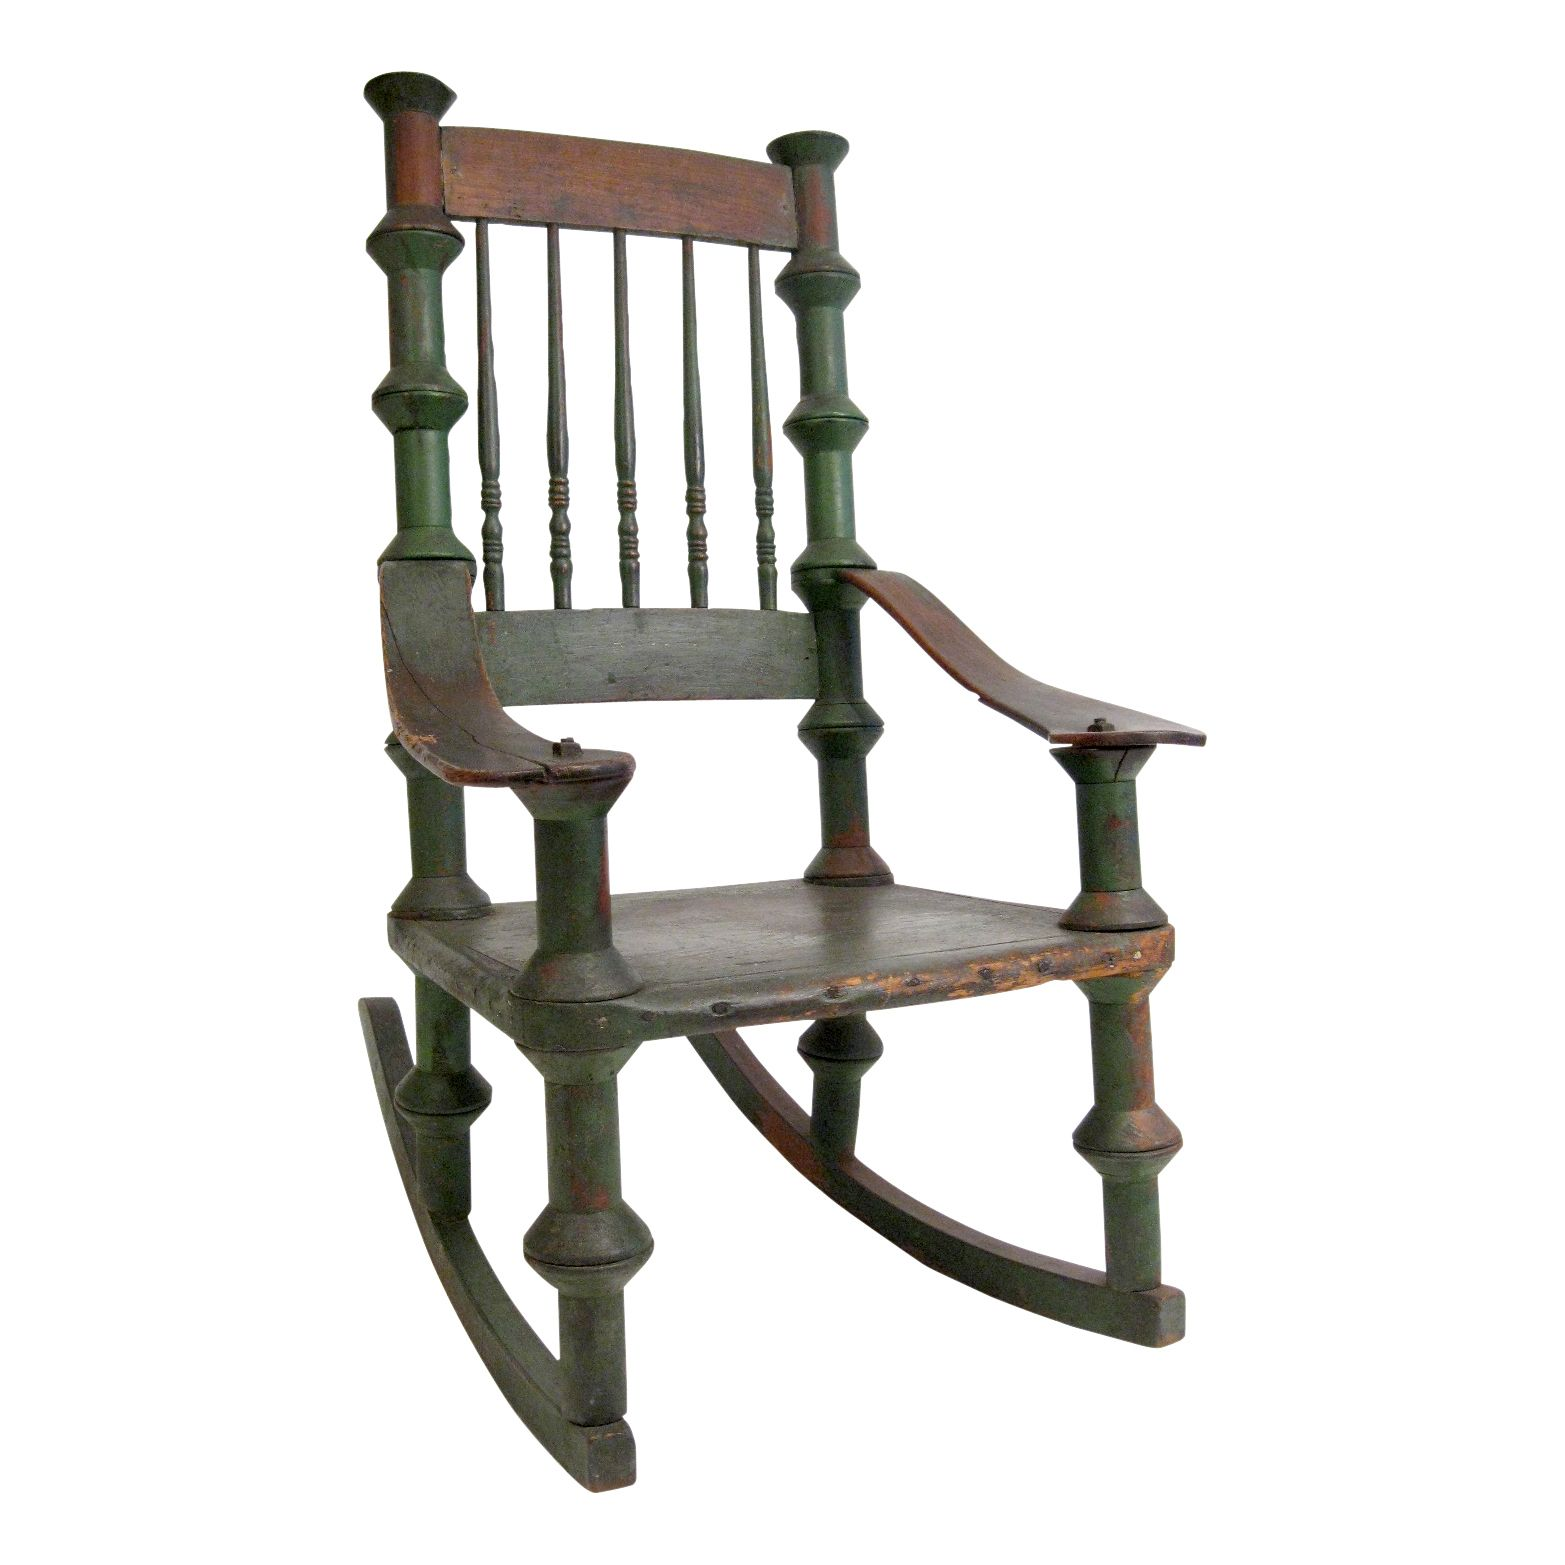 Early 20th Century Reclaimed Wood Rocking Chair VandM